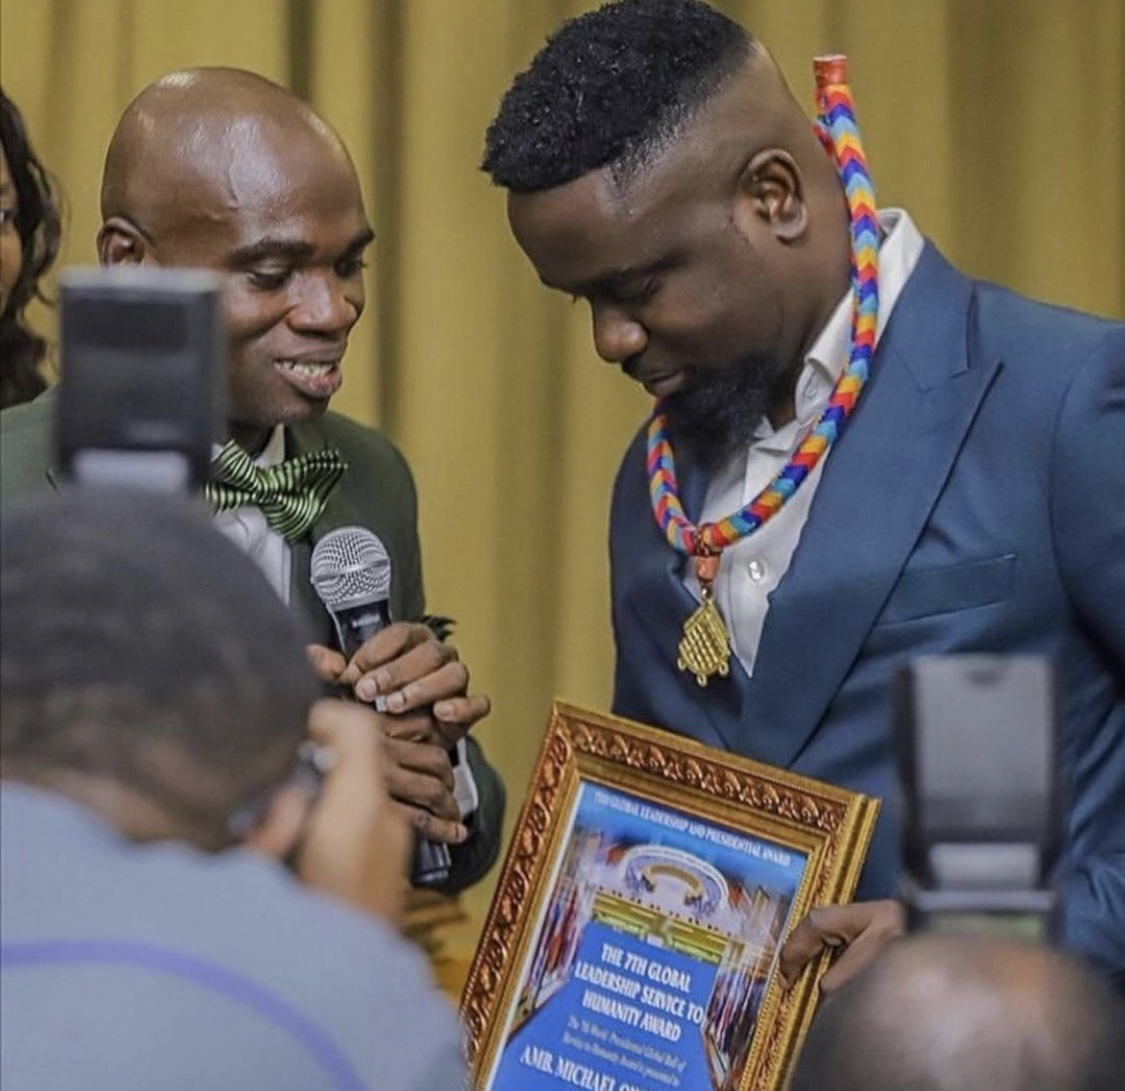 sarkodie-finally-breaks-silence-on-fake-un-award